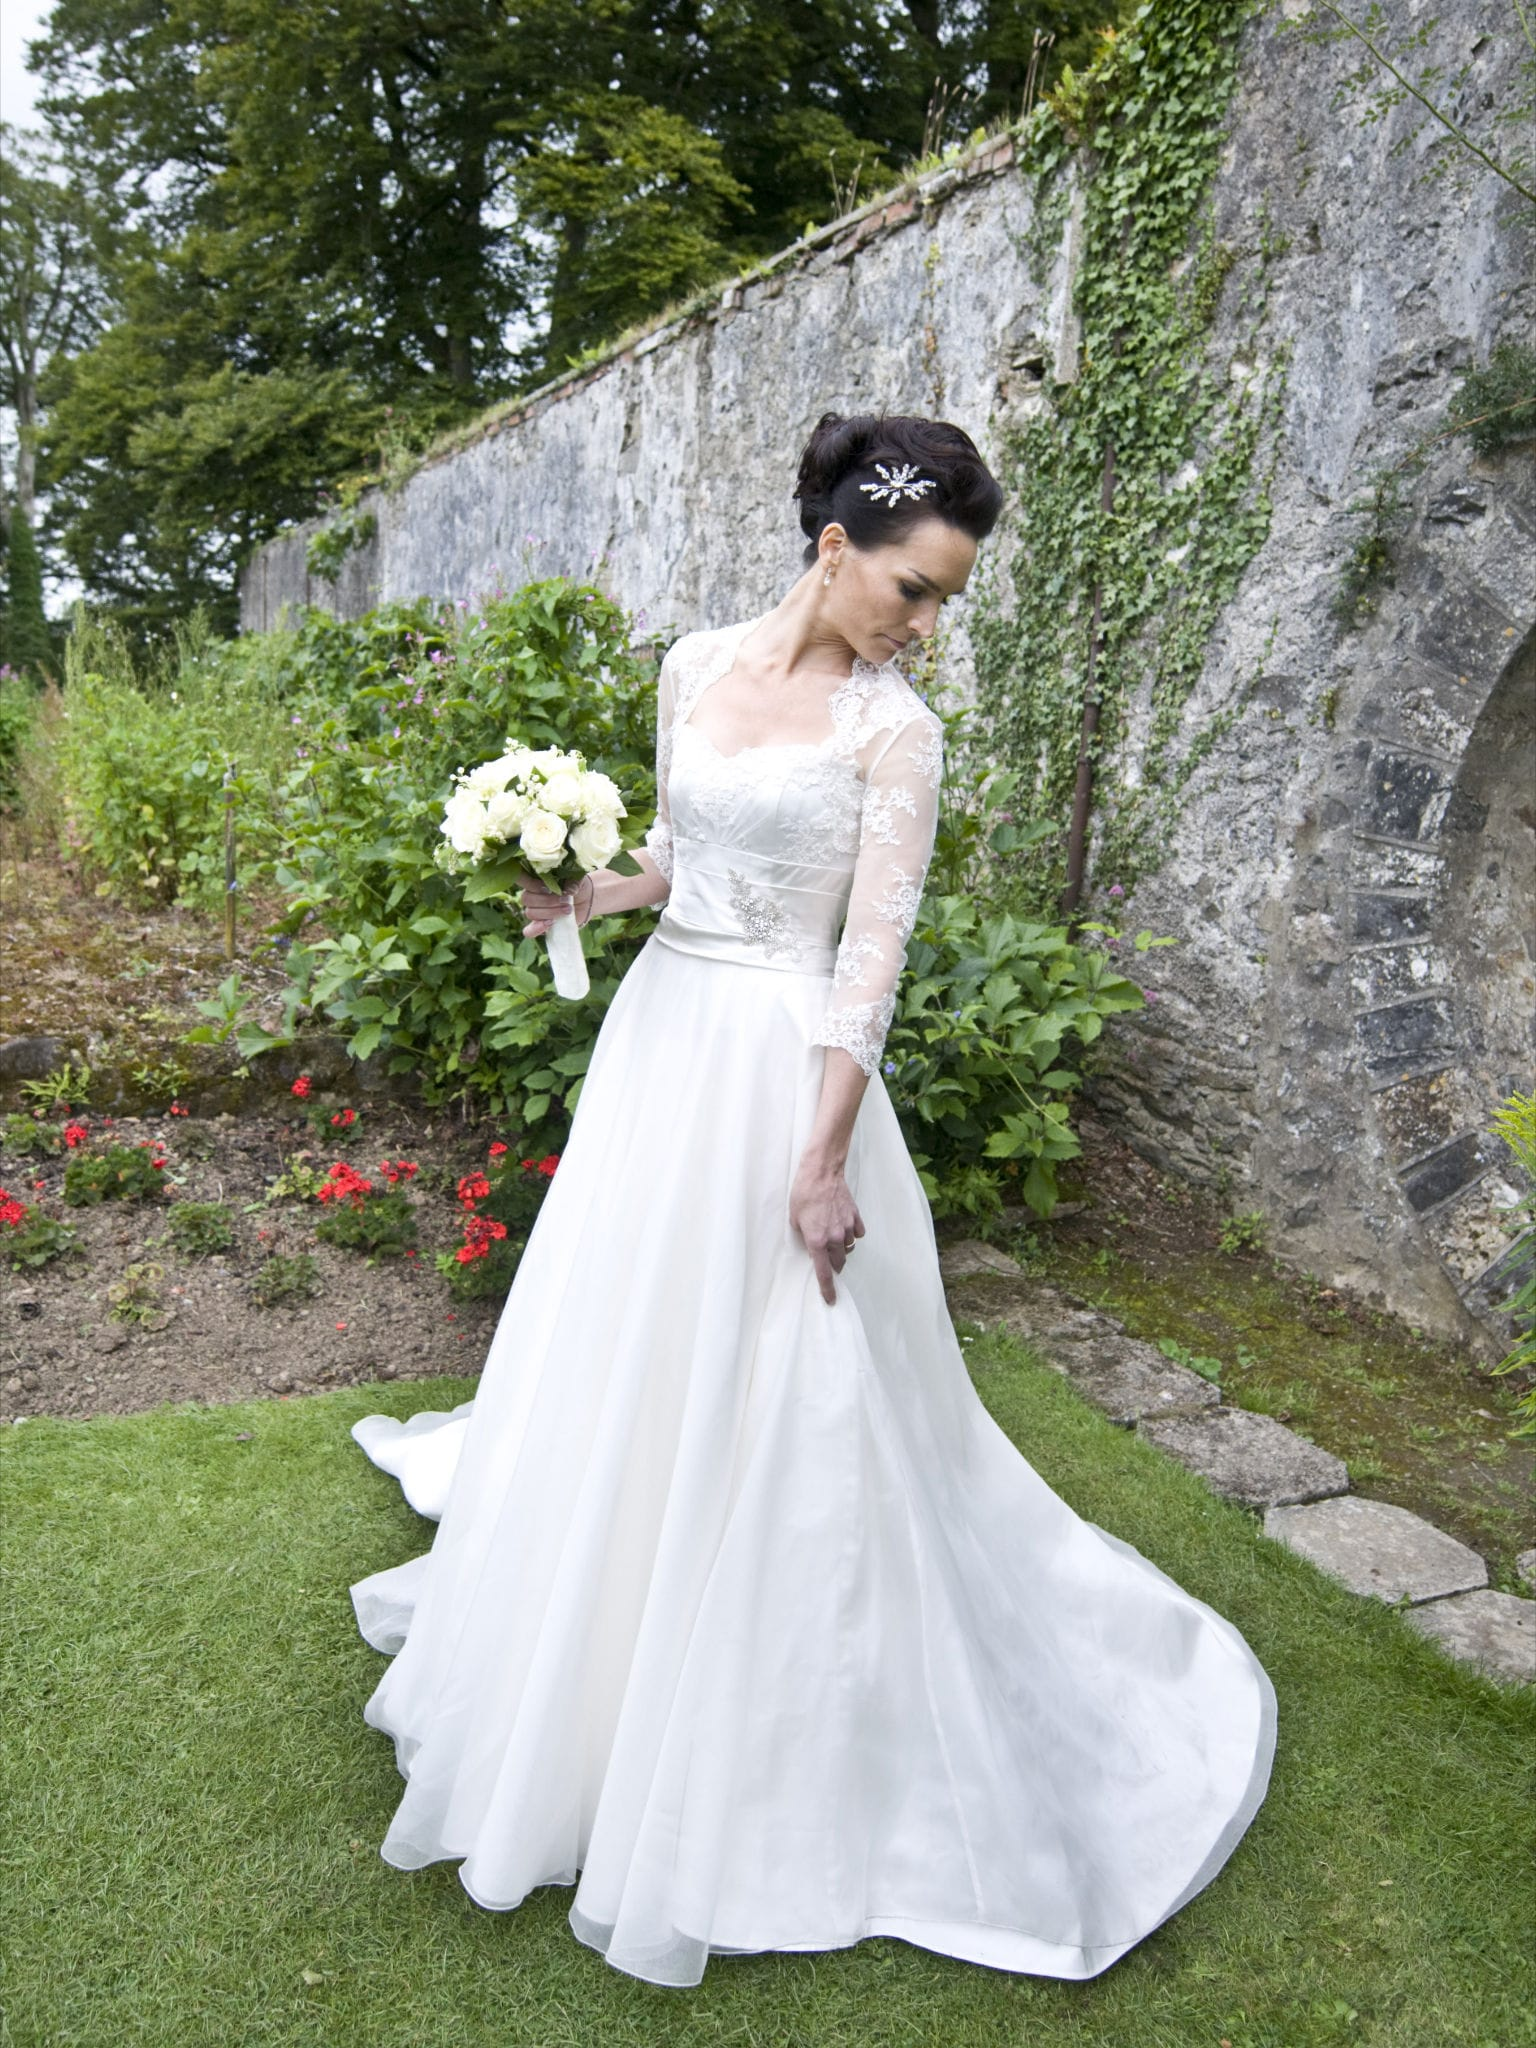 Couture wedding dress sell my wedding dress online for Sell wedding dress for free